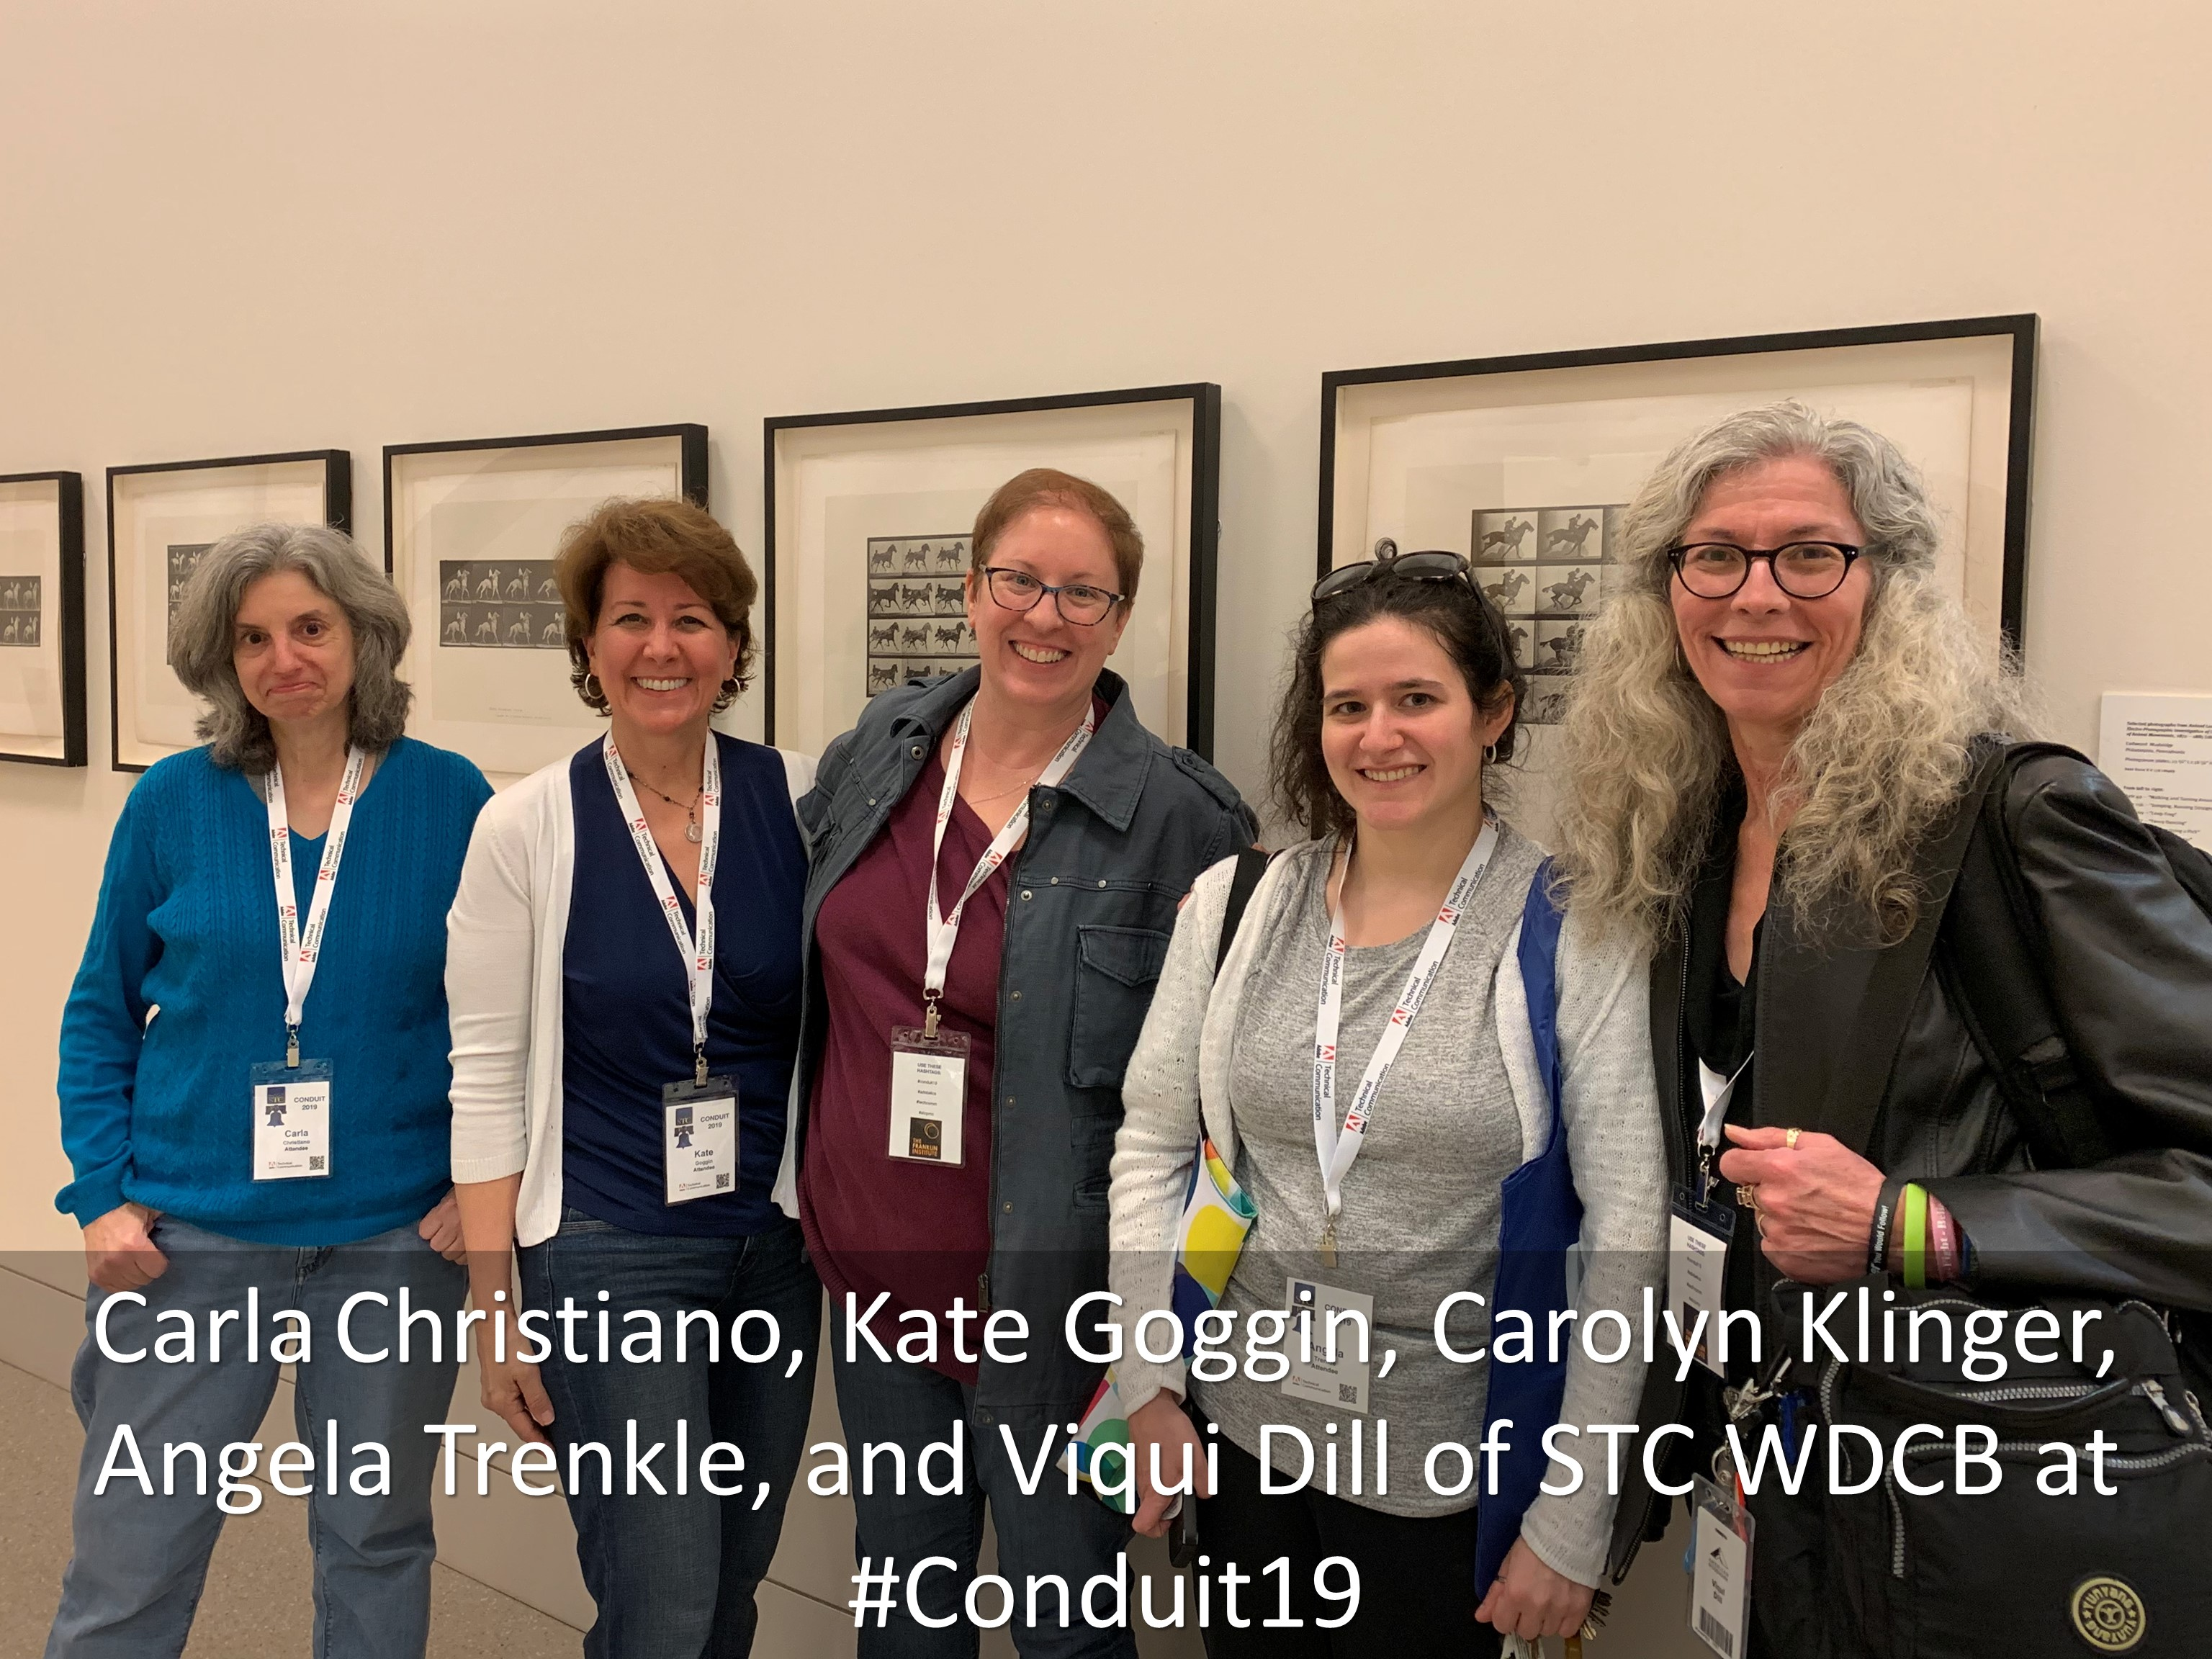 18 Carla Christiano Kate Goggin Carolyn Klinger Angela Trenkle and Viqui Dill of STC WDCB at Conduit19